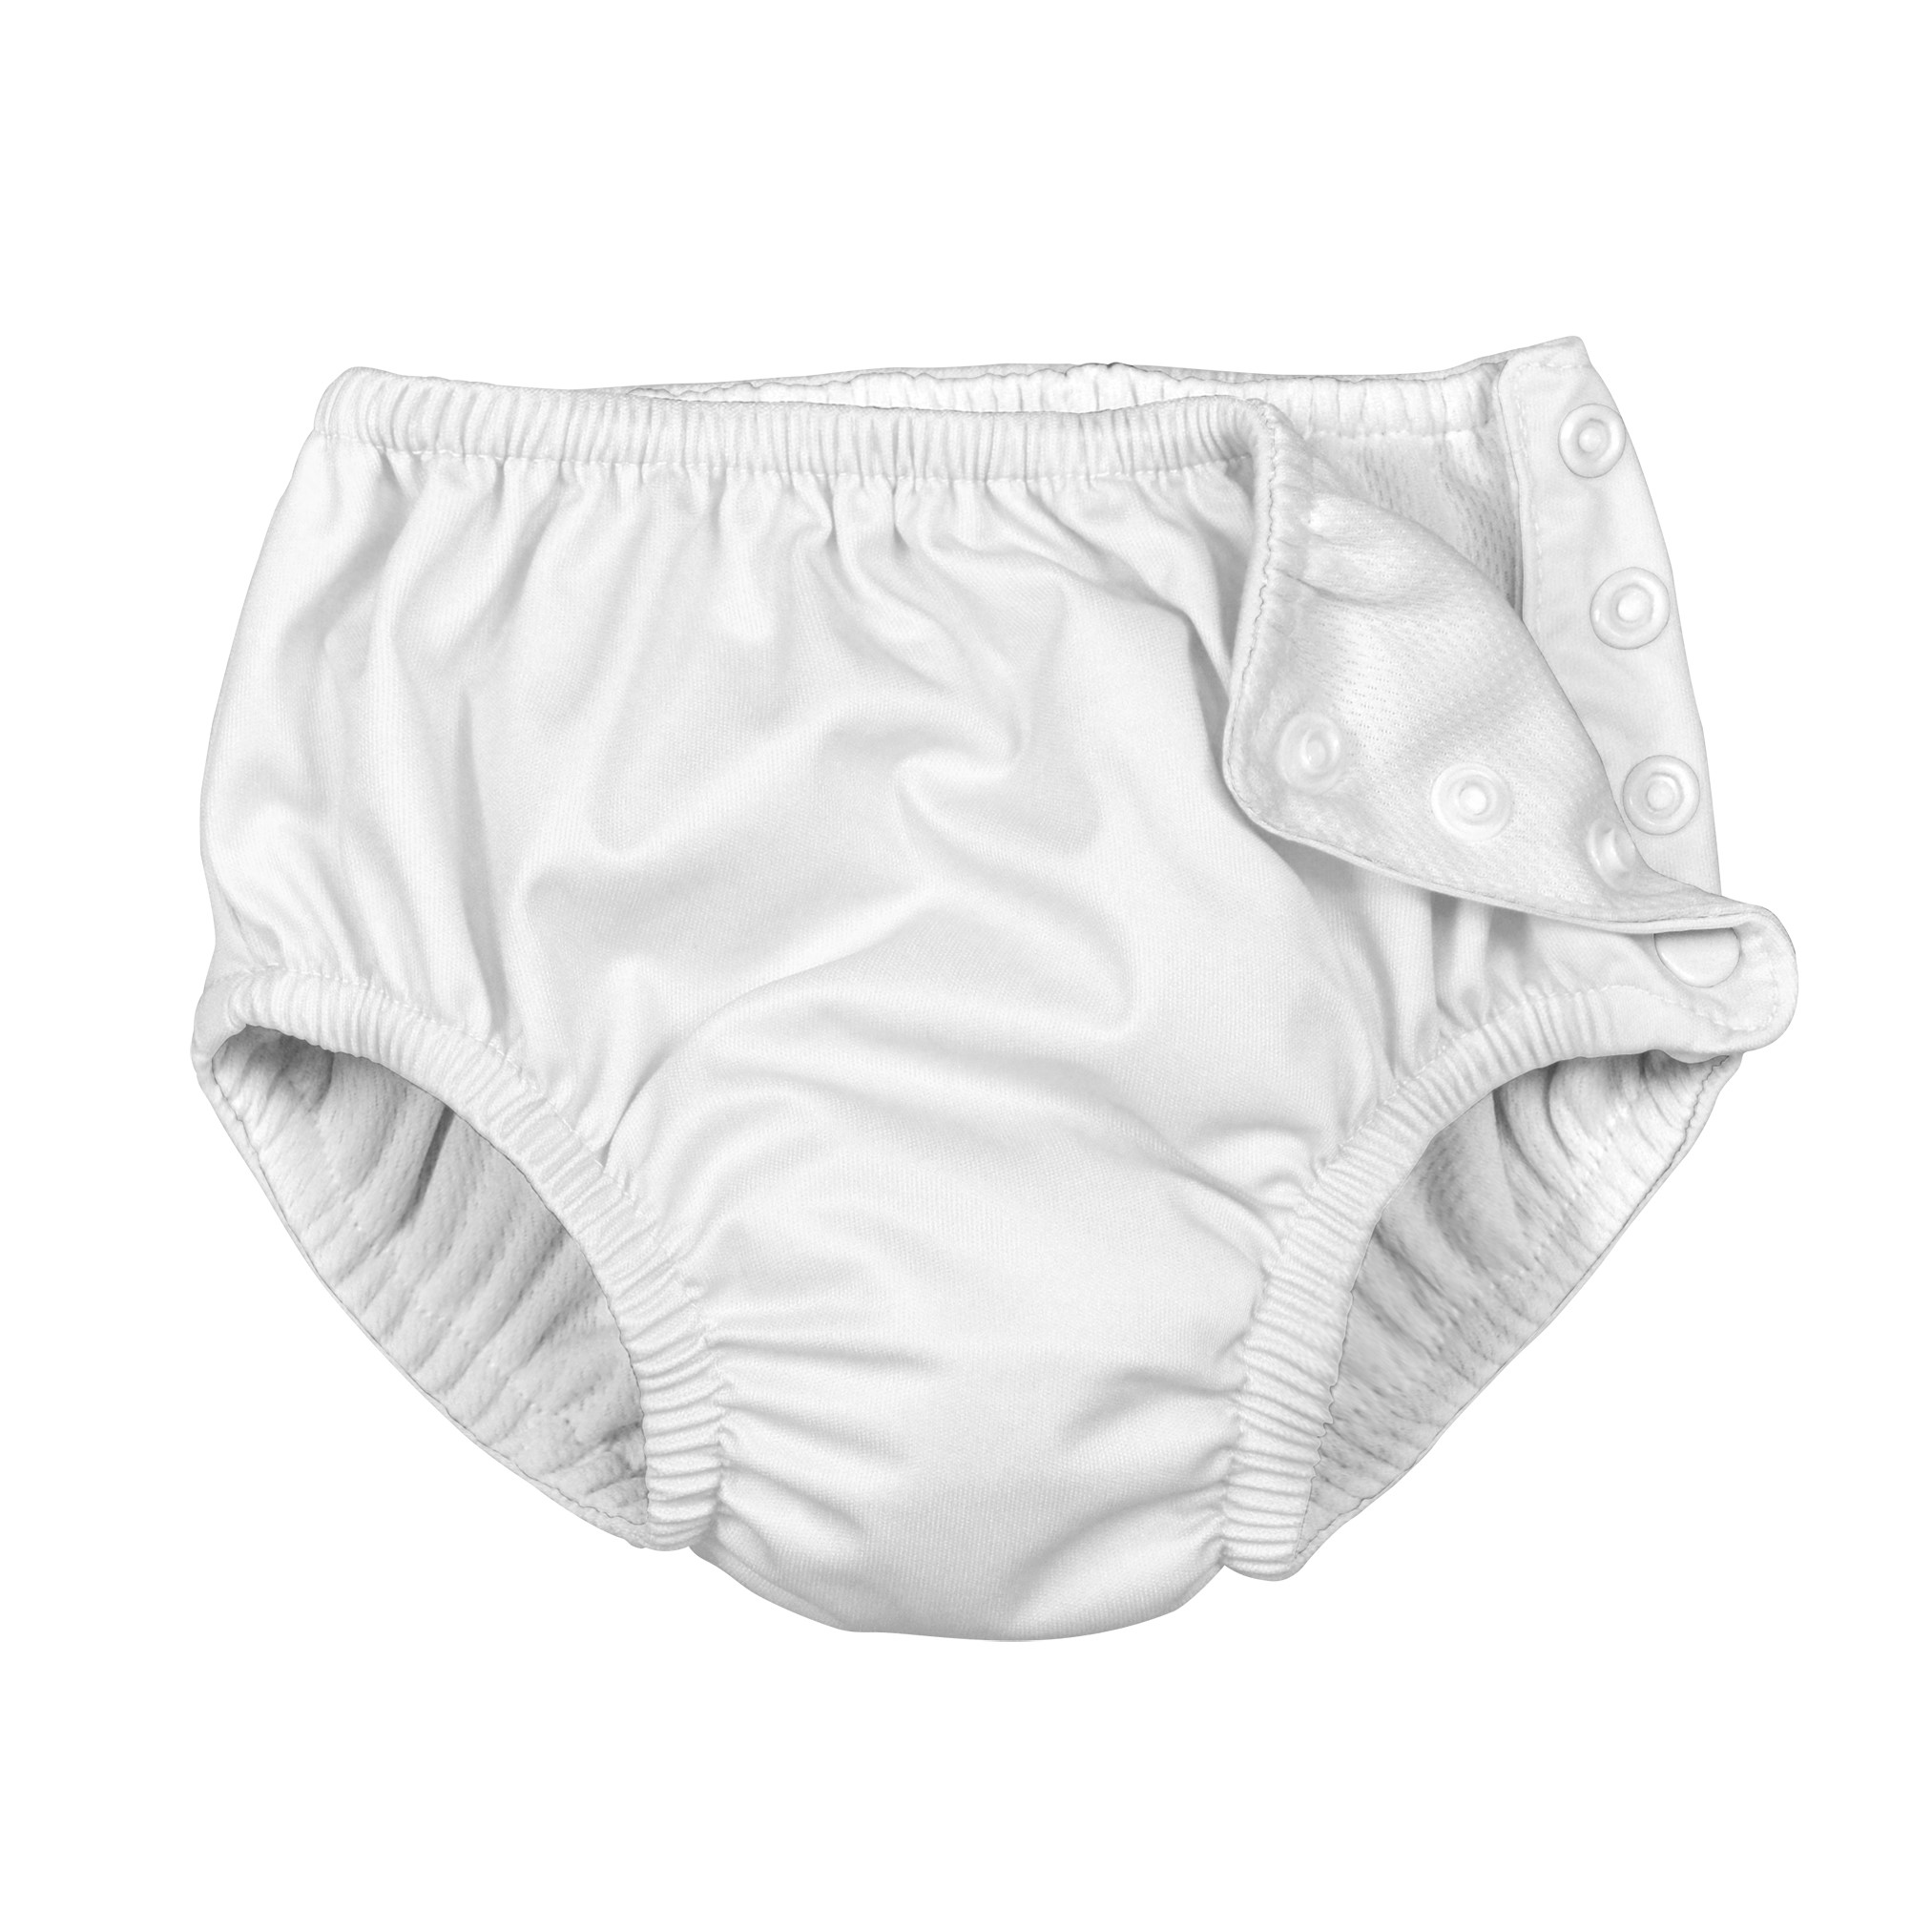 Snap Reusable Absorbent Swimsuit Diaper-White-3T